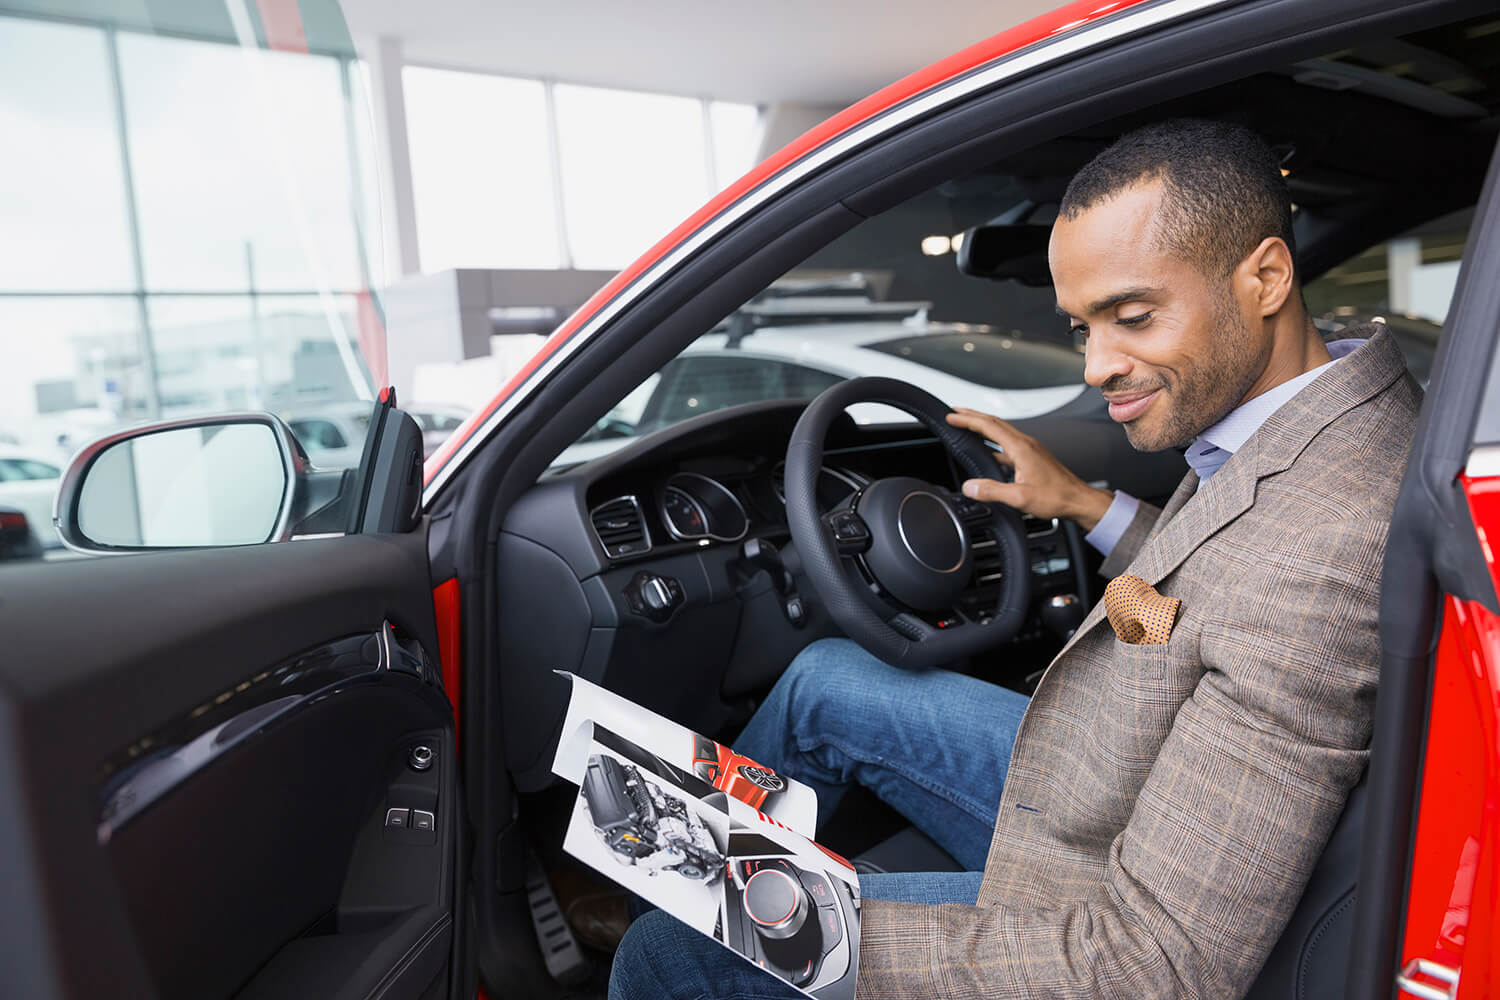 Man in car contemplating getting an online car loan